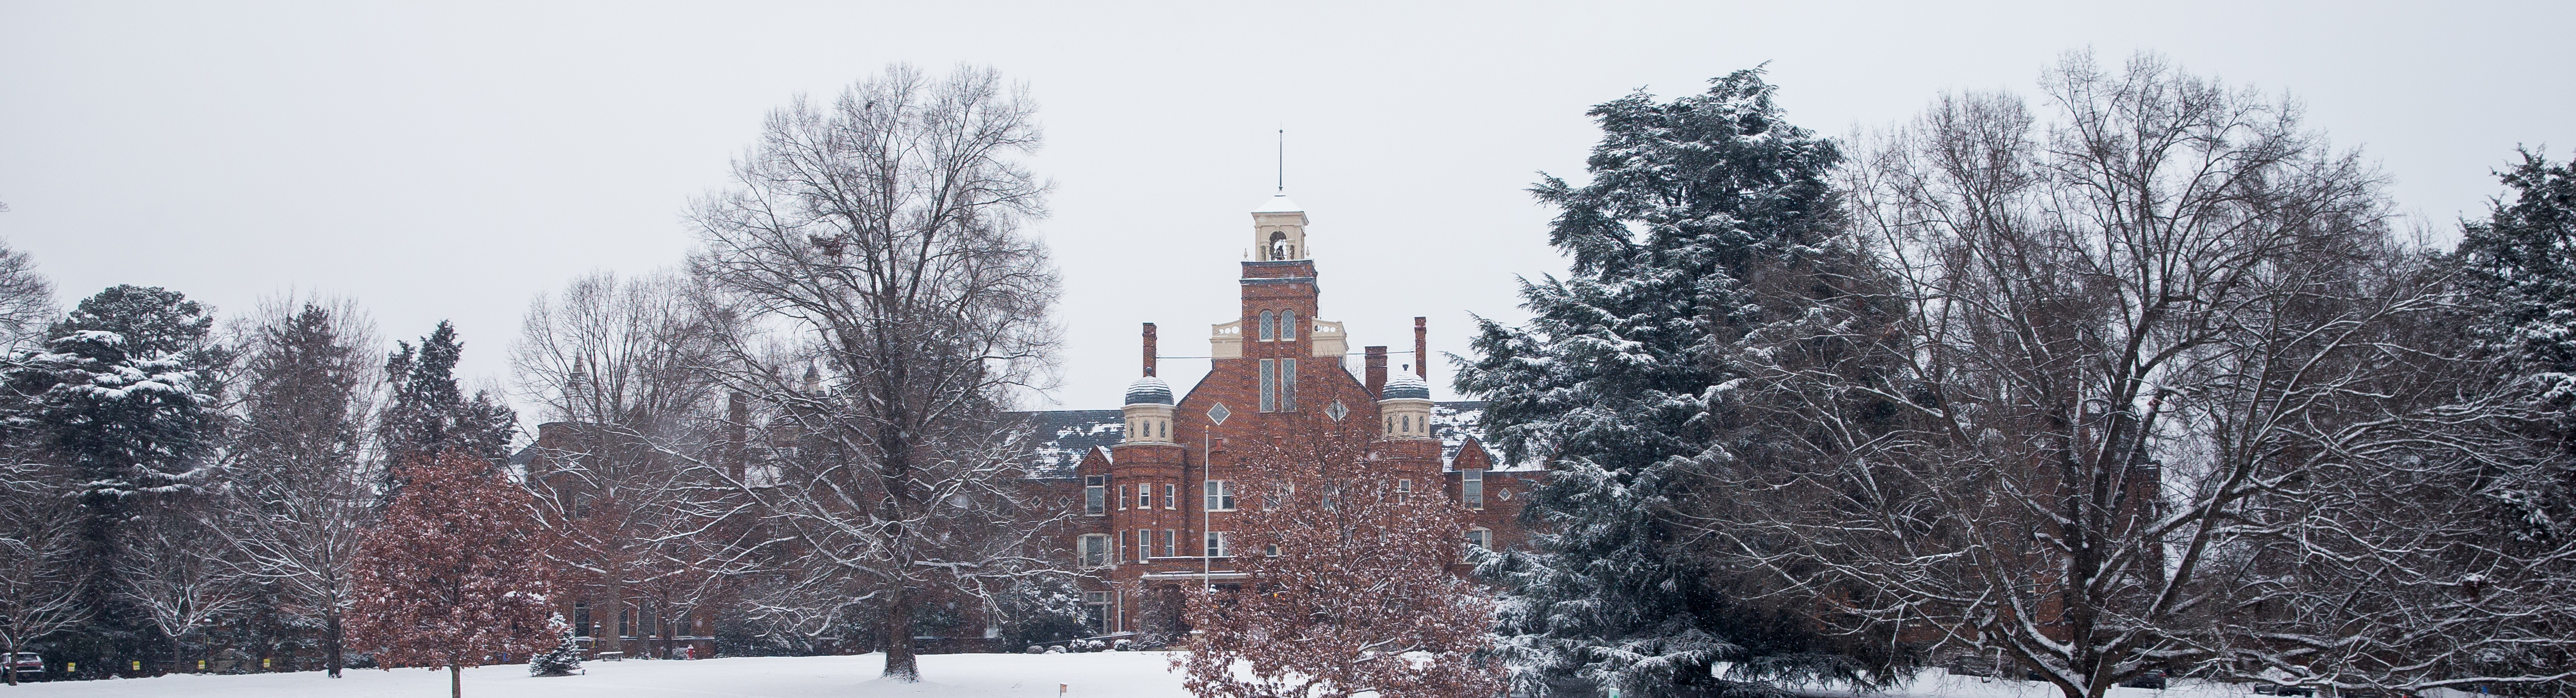 Photo of Main Hall in the snow